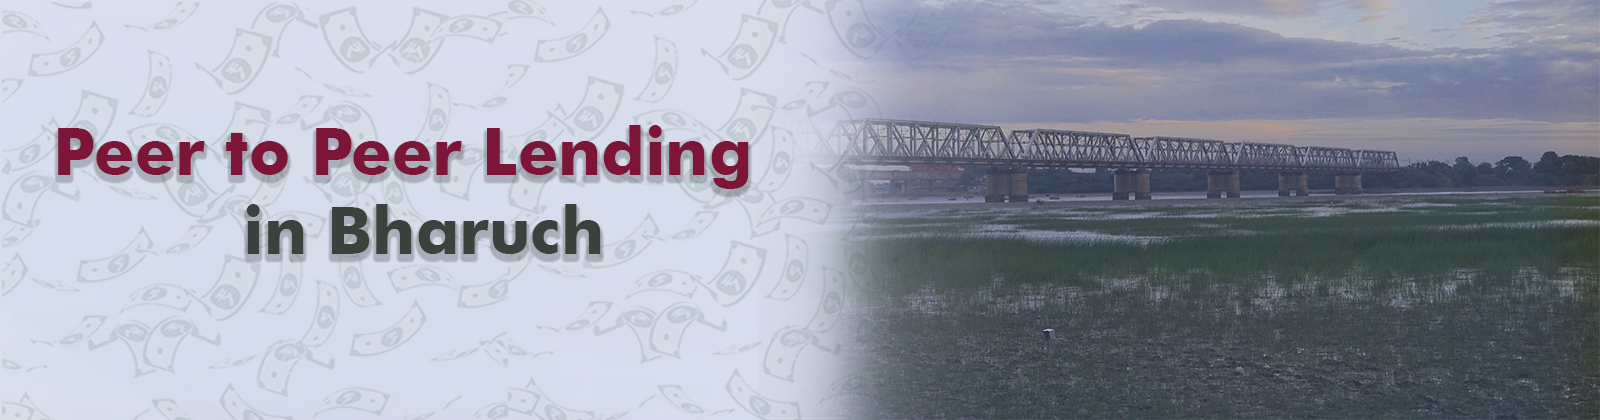 Peer to Peer Lending in Bharuch